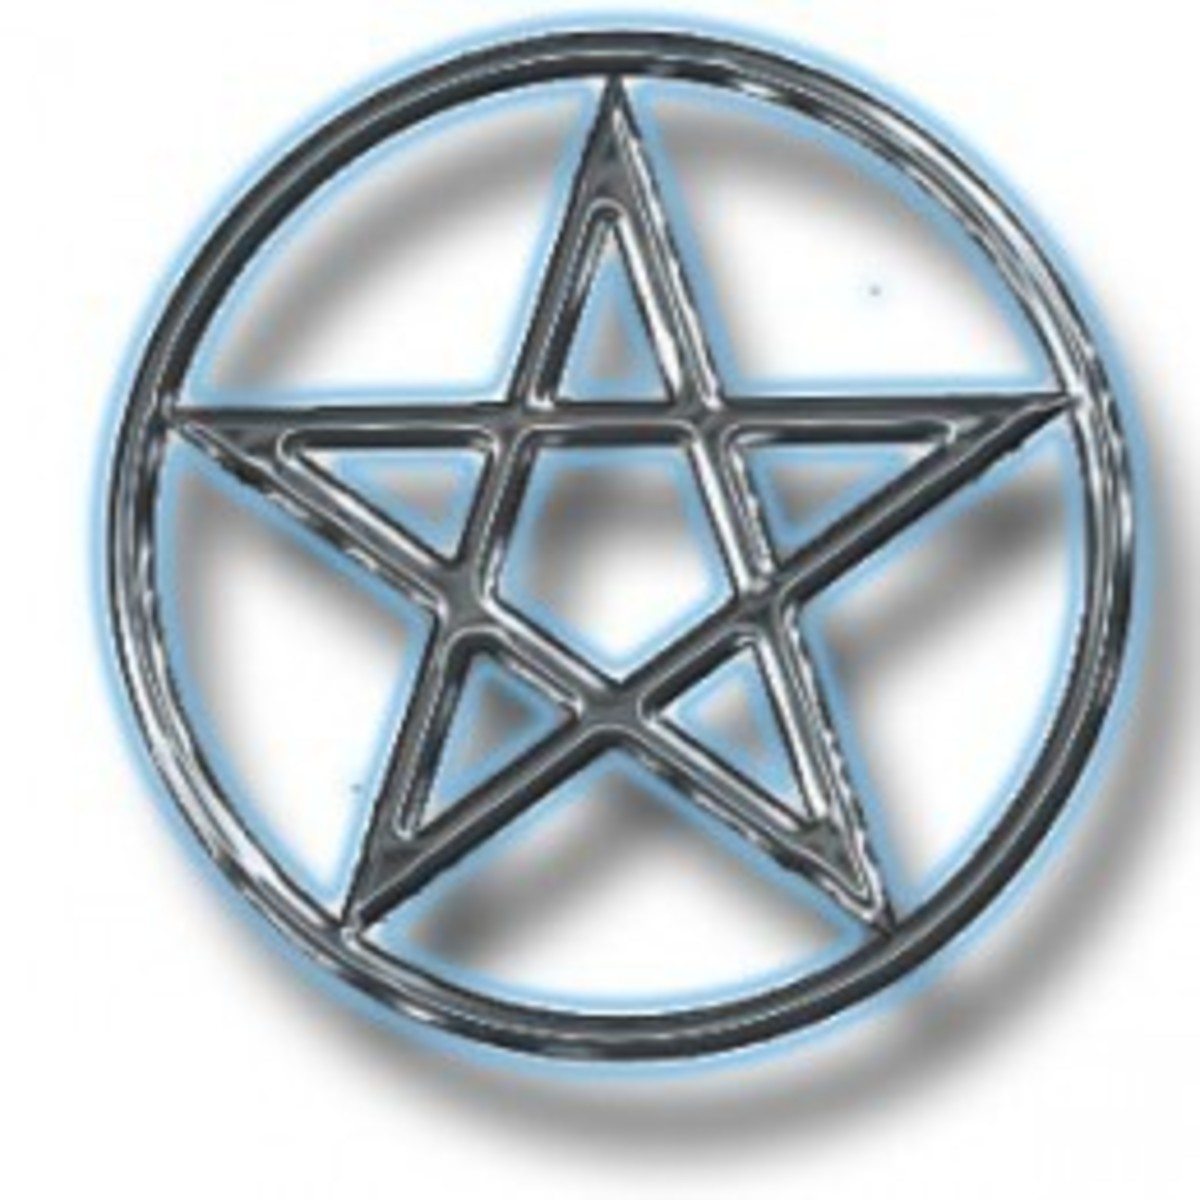 wicca-for-beginners-getting-over-scary-words